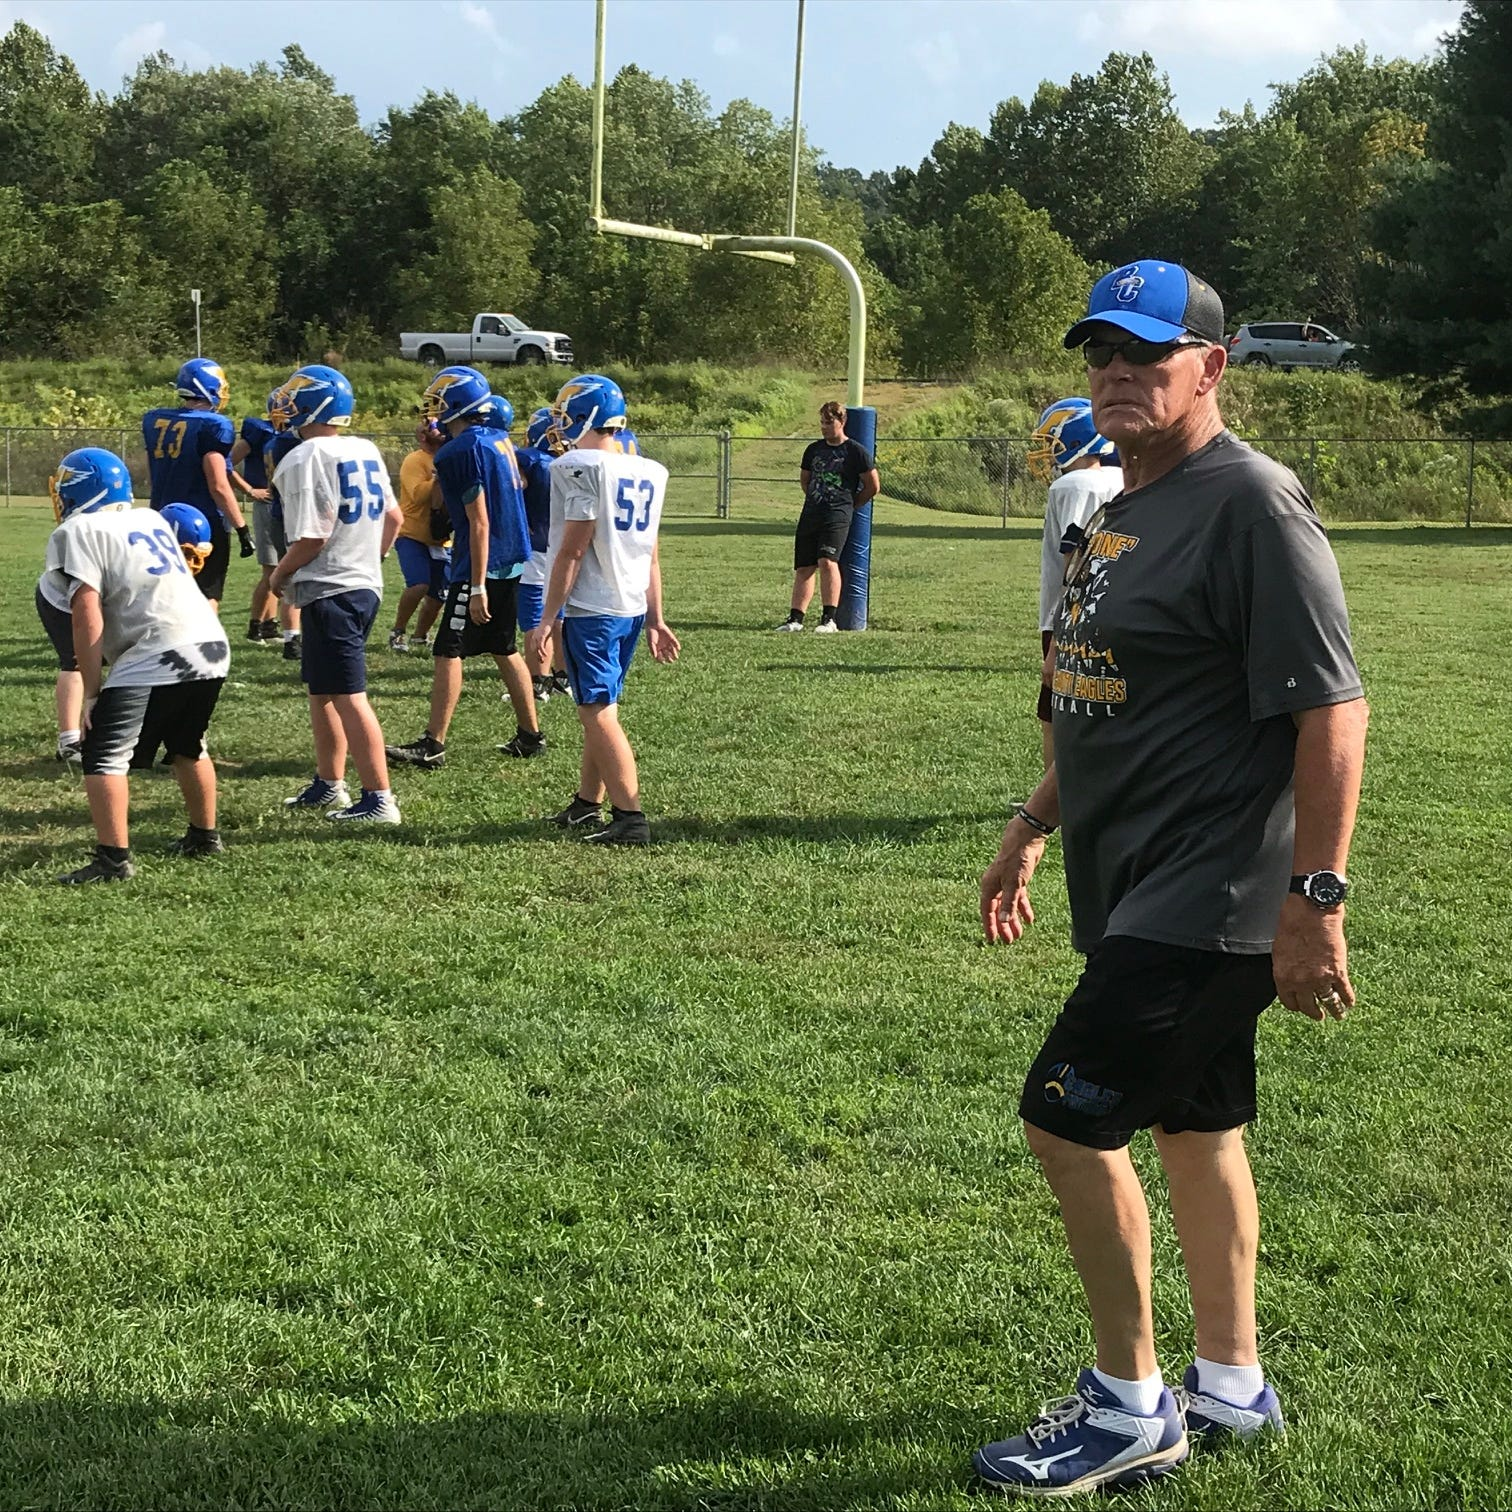 From Wall Street to Brown County: Former Purdue and NFL running back coaching football